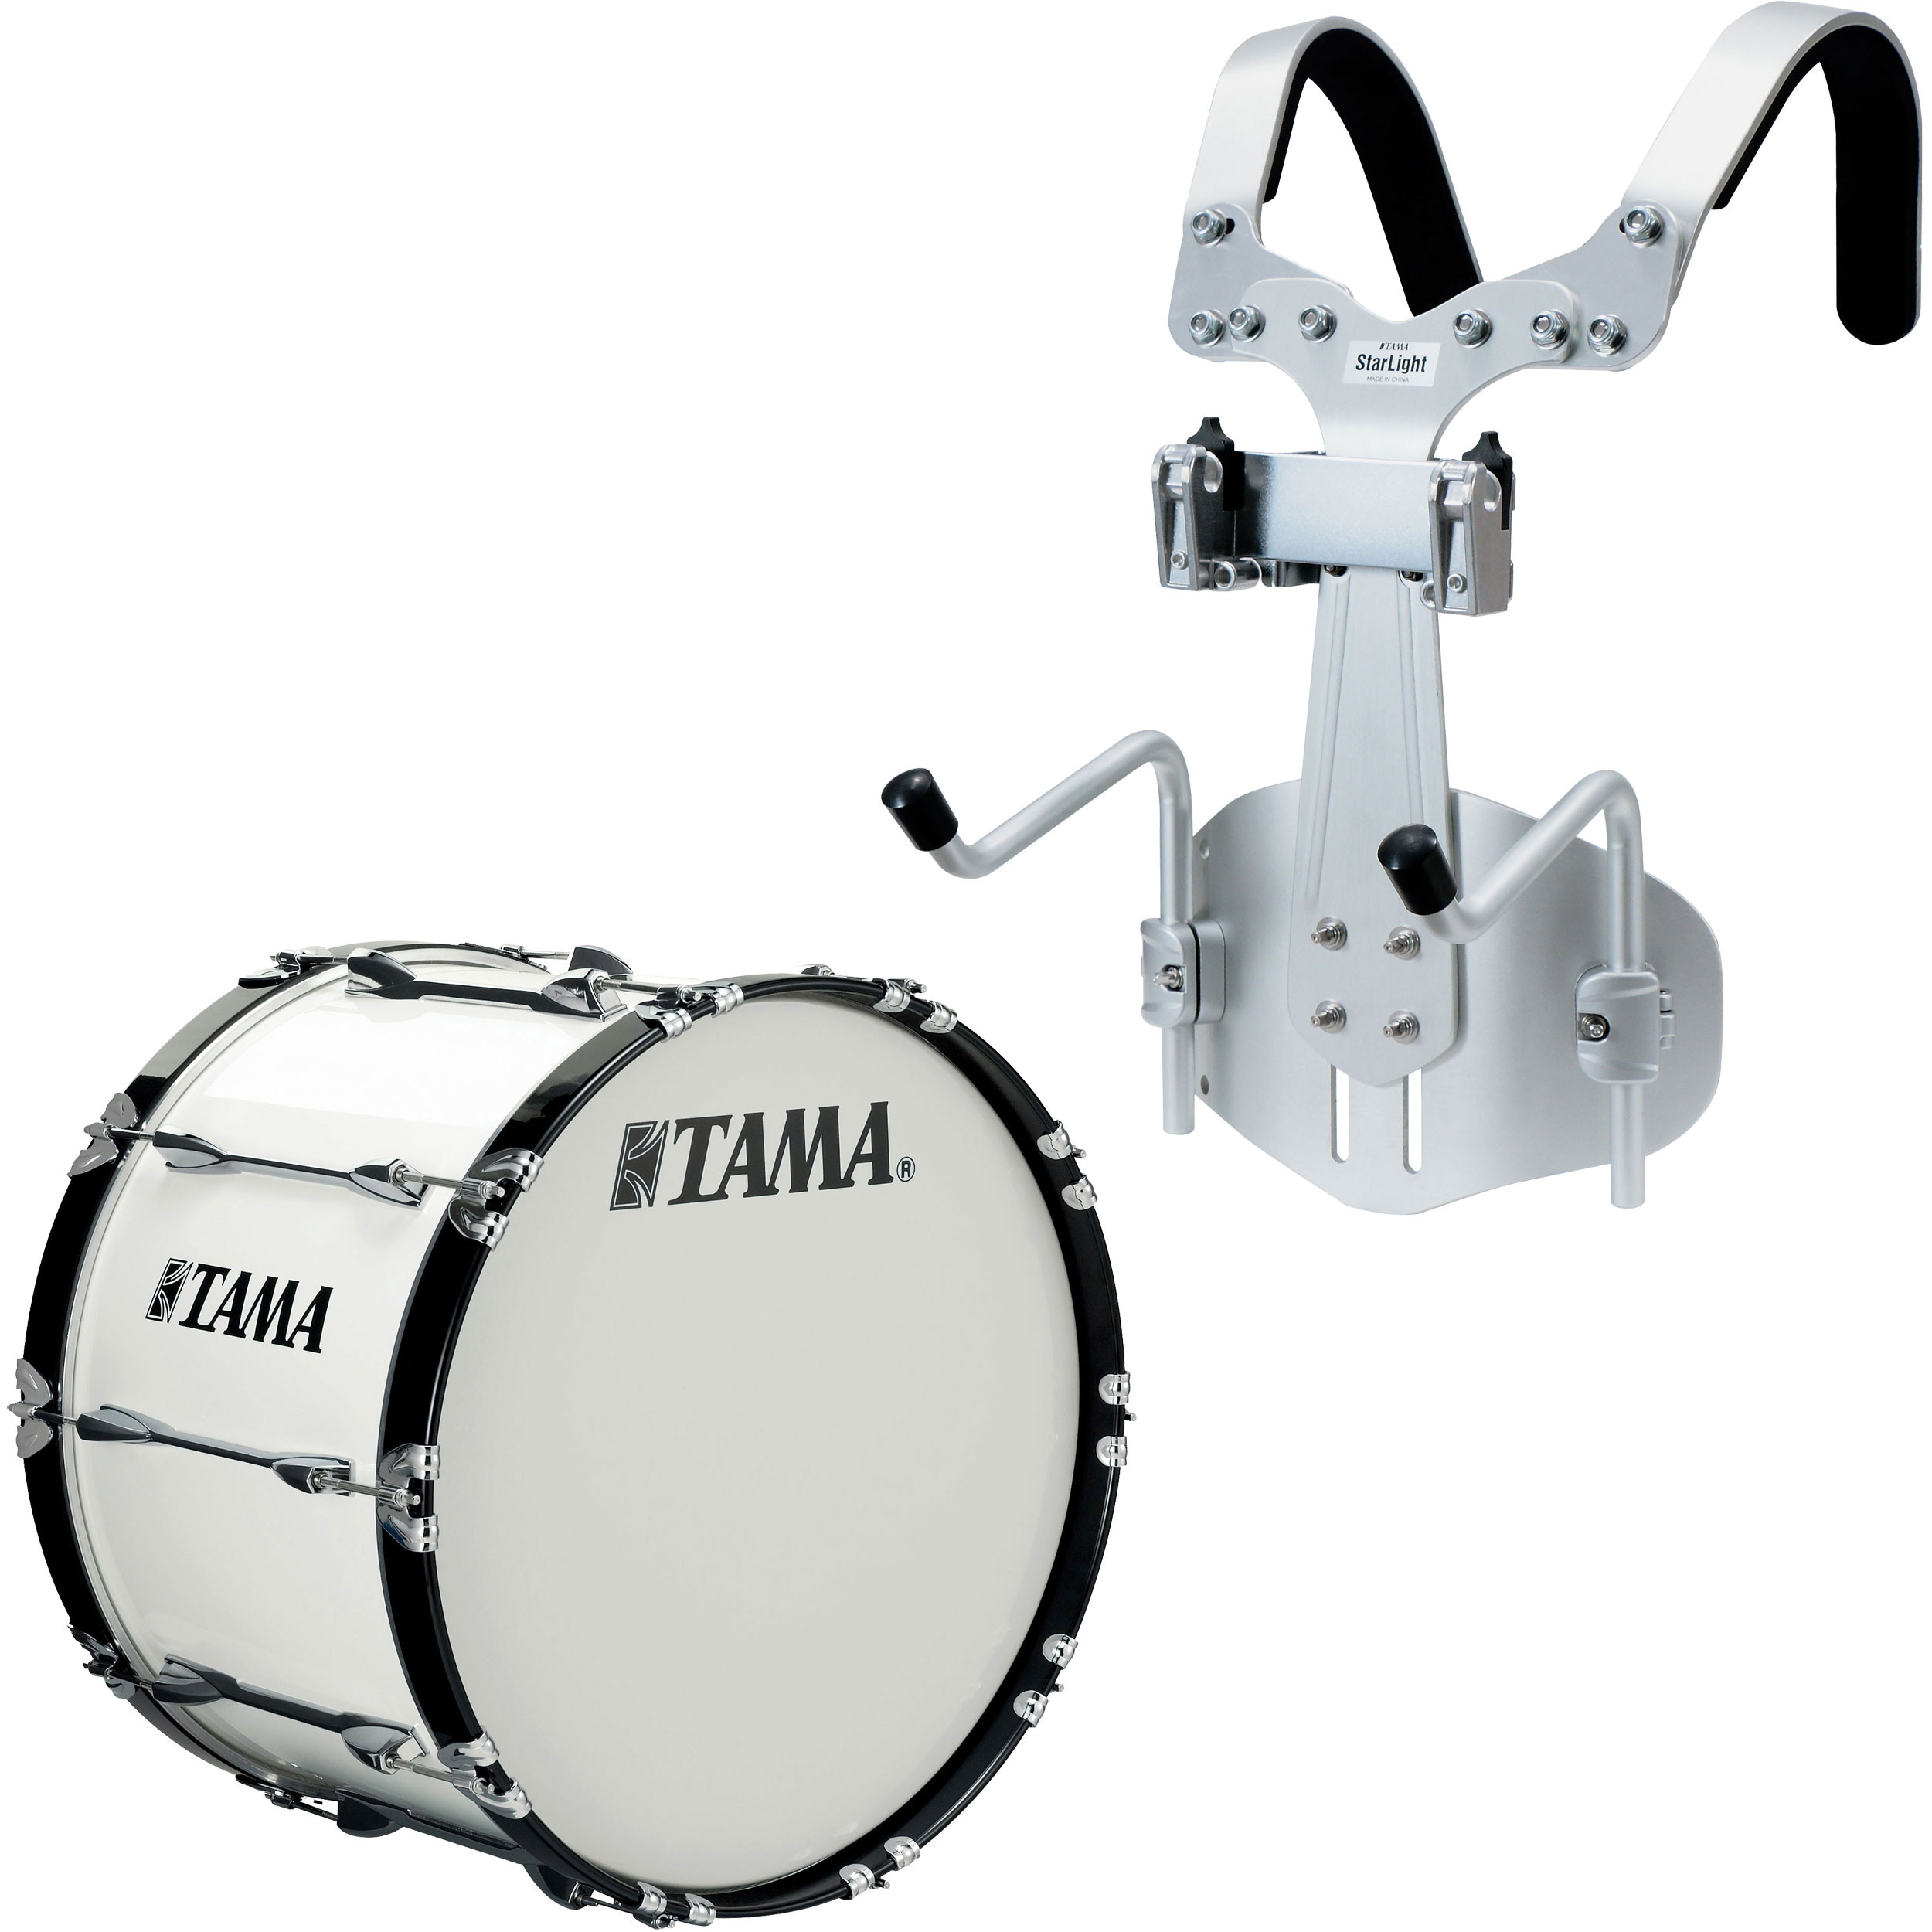 "Tama 22"" StarLight Marching Bass Drum in Sugar White Wrap with Carrier"